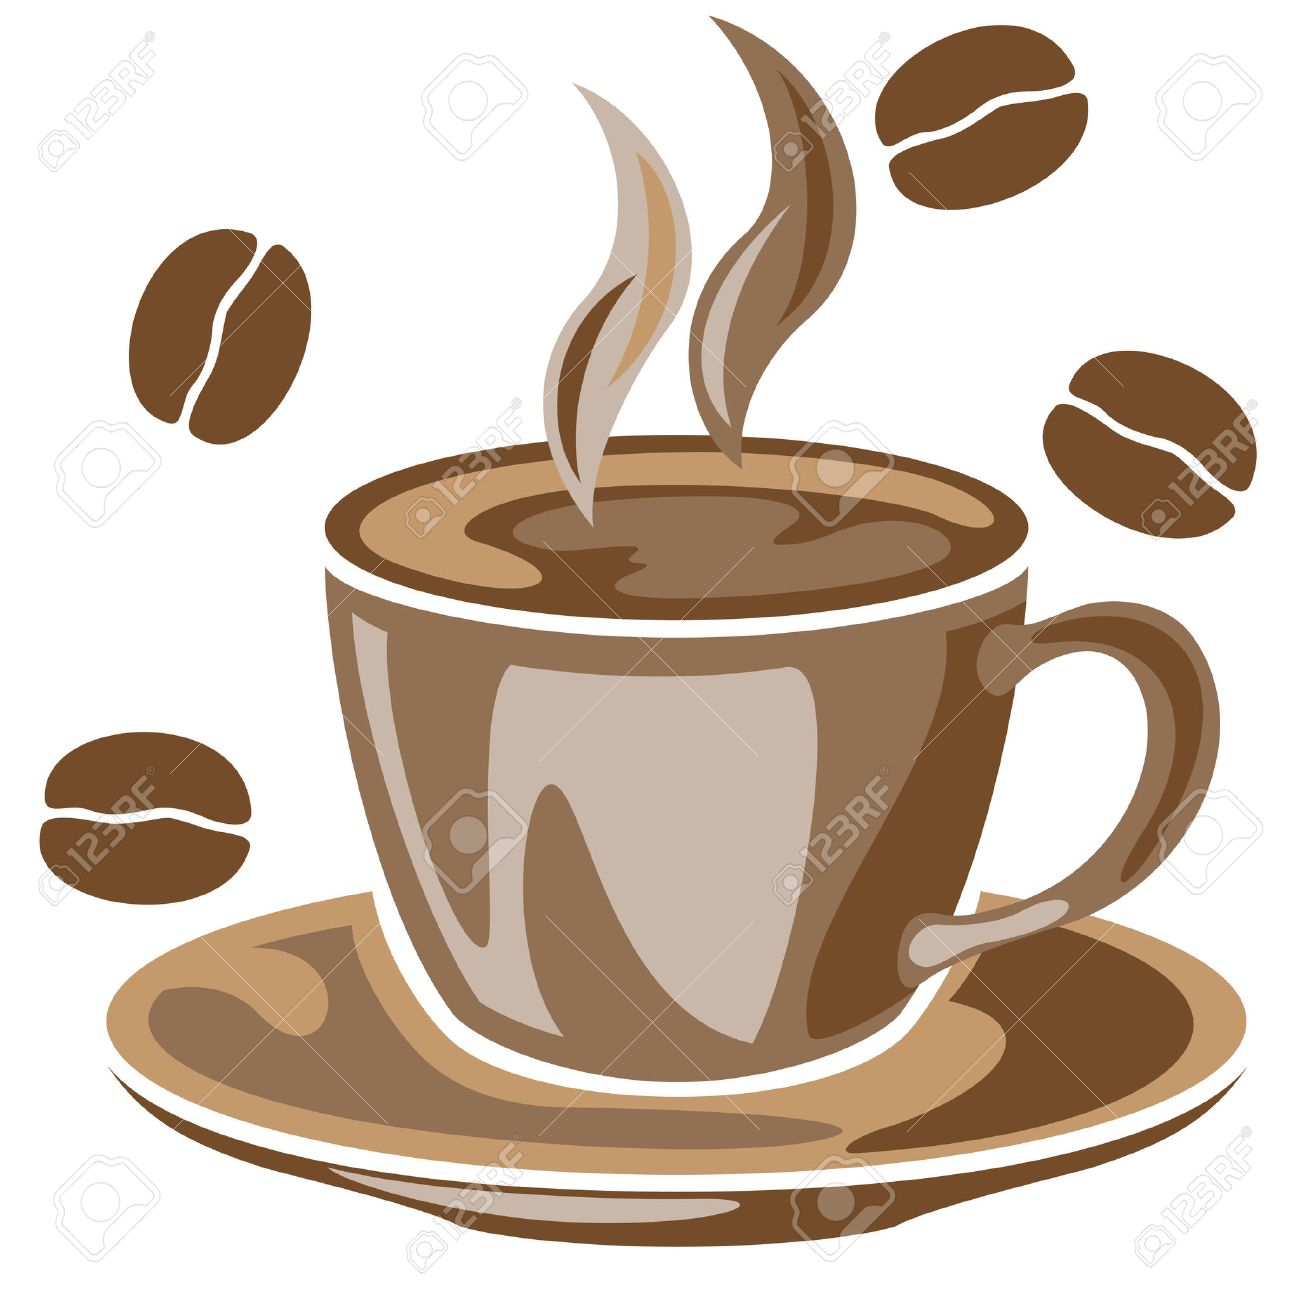 A steaming cup of coffee and coffee beans drawing Stock Vector - 23764262